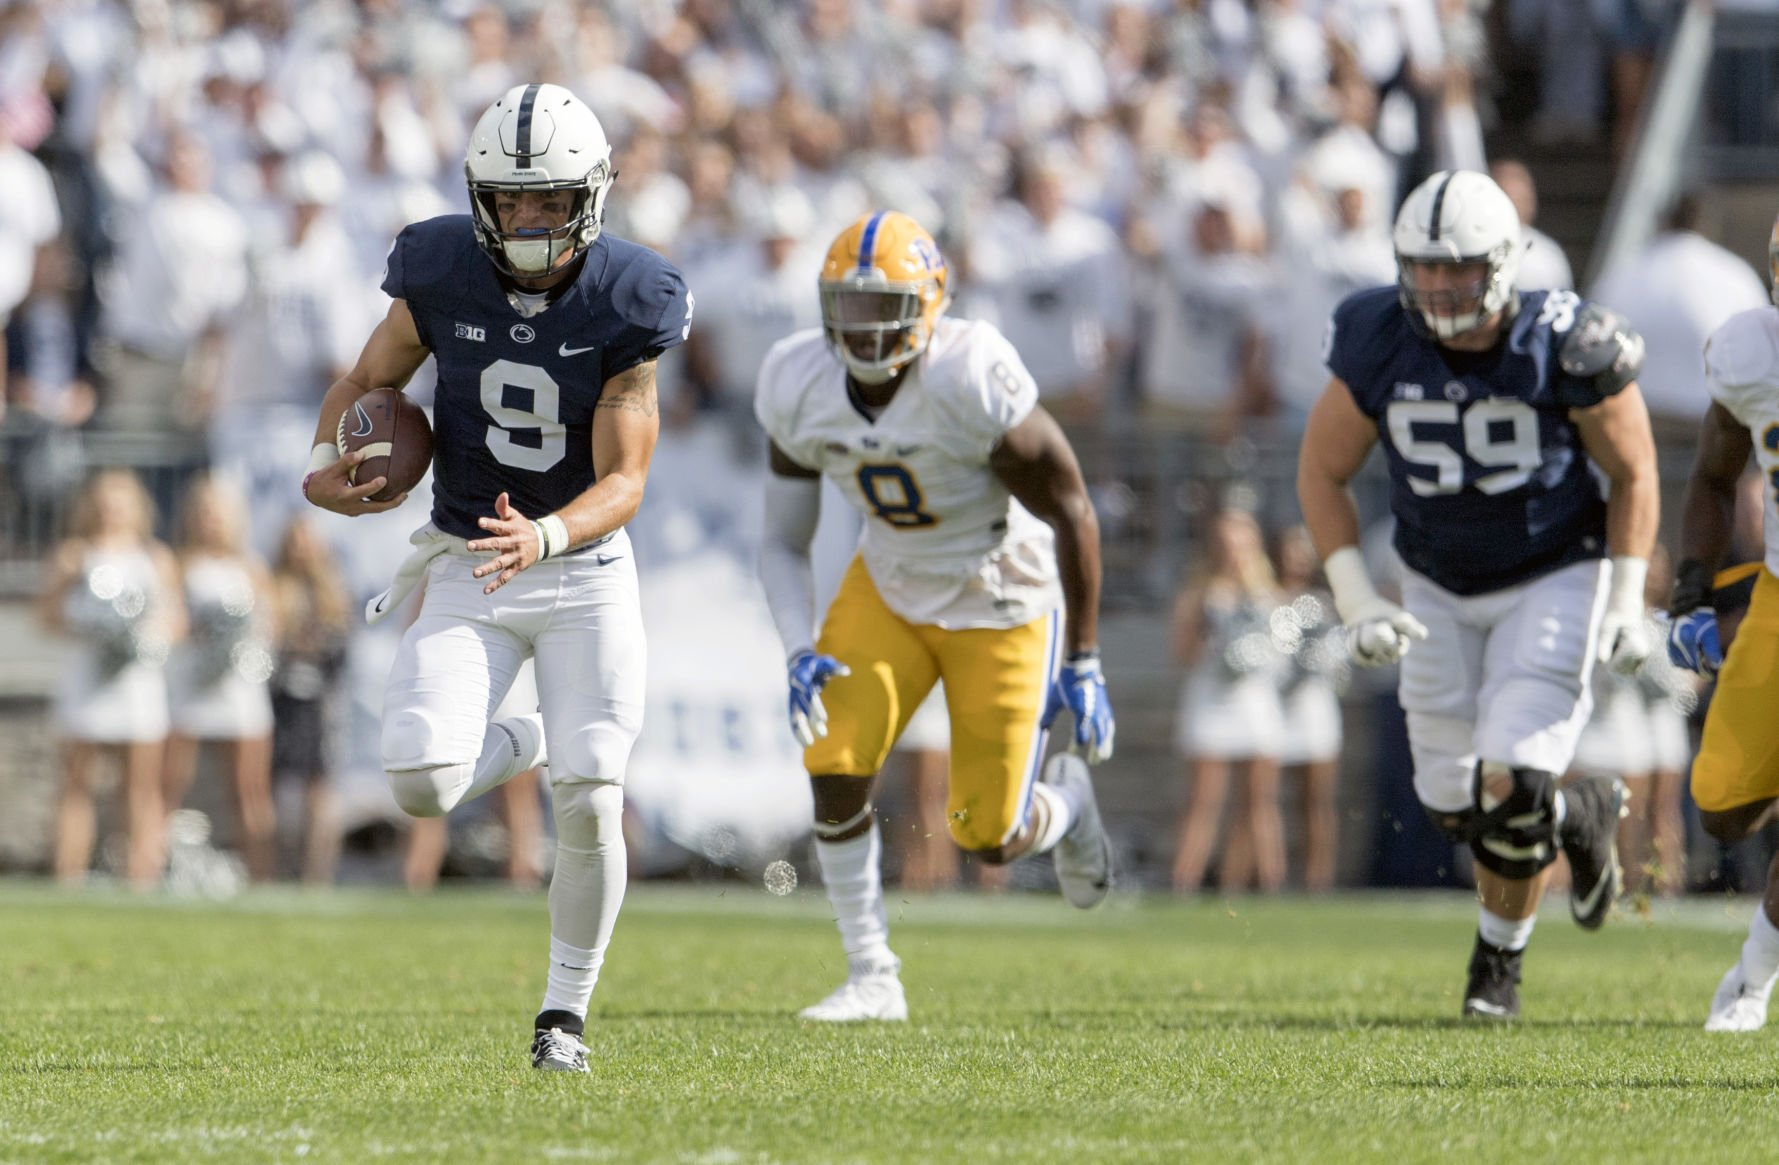 Penn State Stays Perfect Behind Saquon Barkley and Some Last-Second Magic